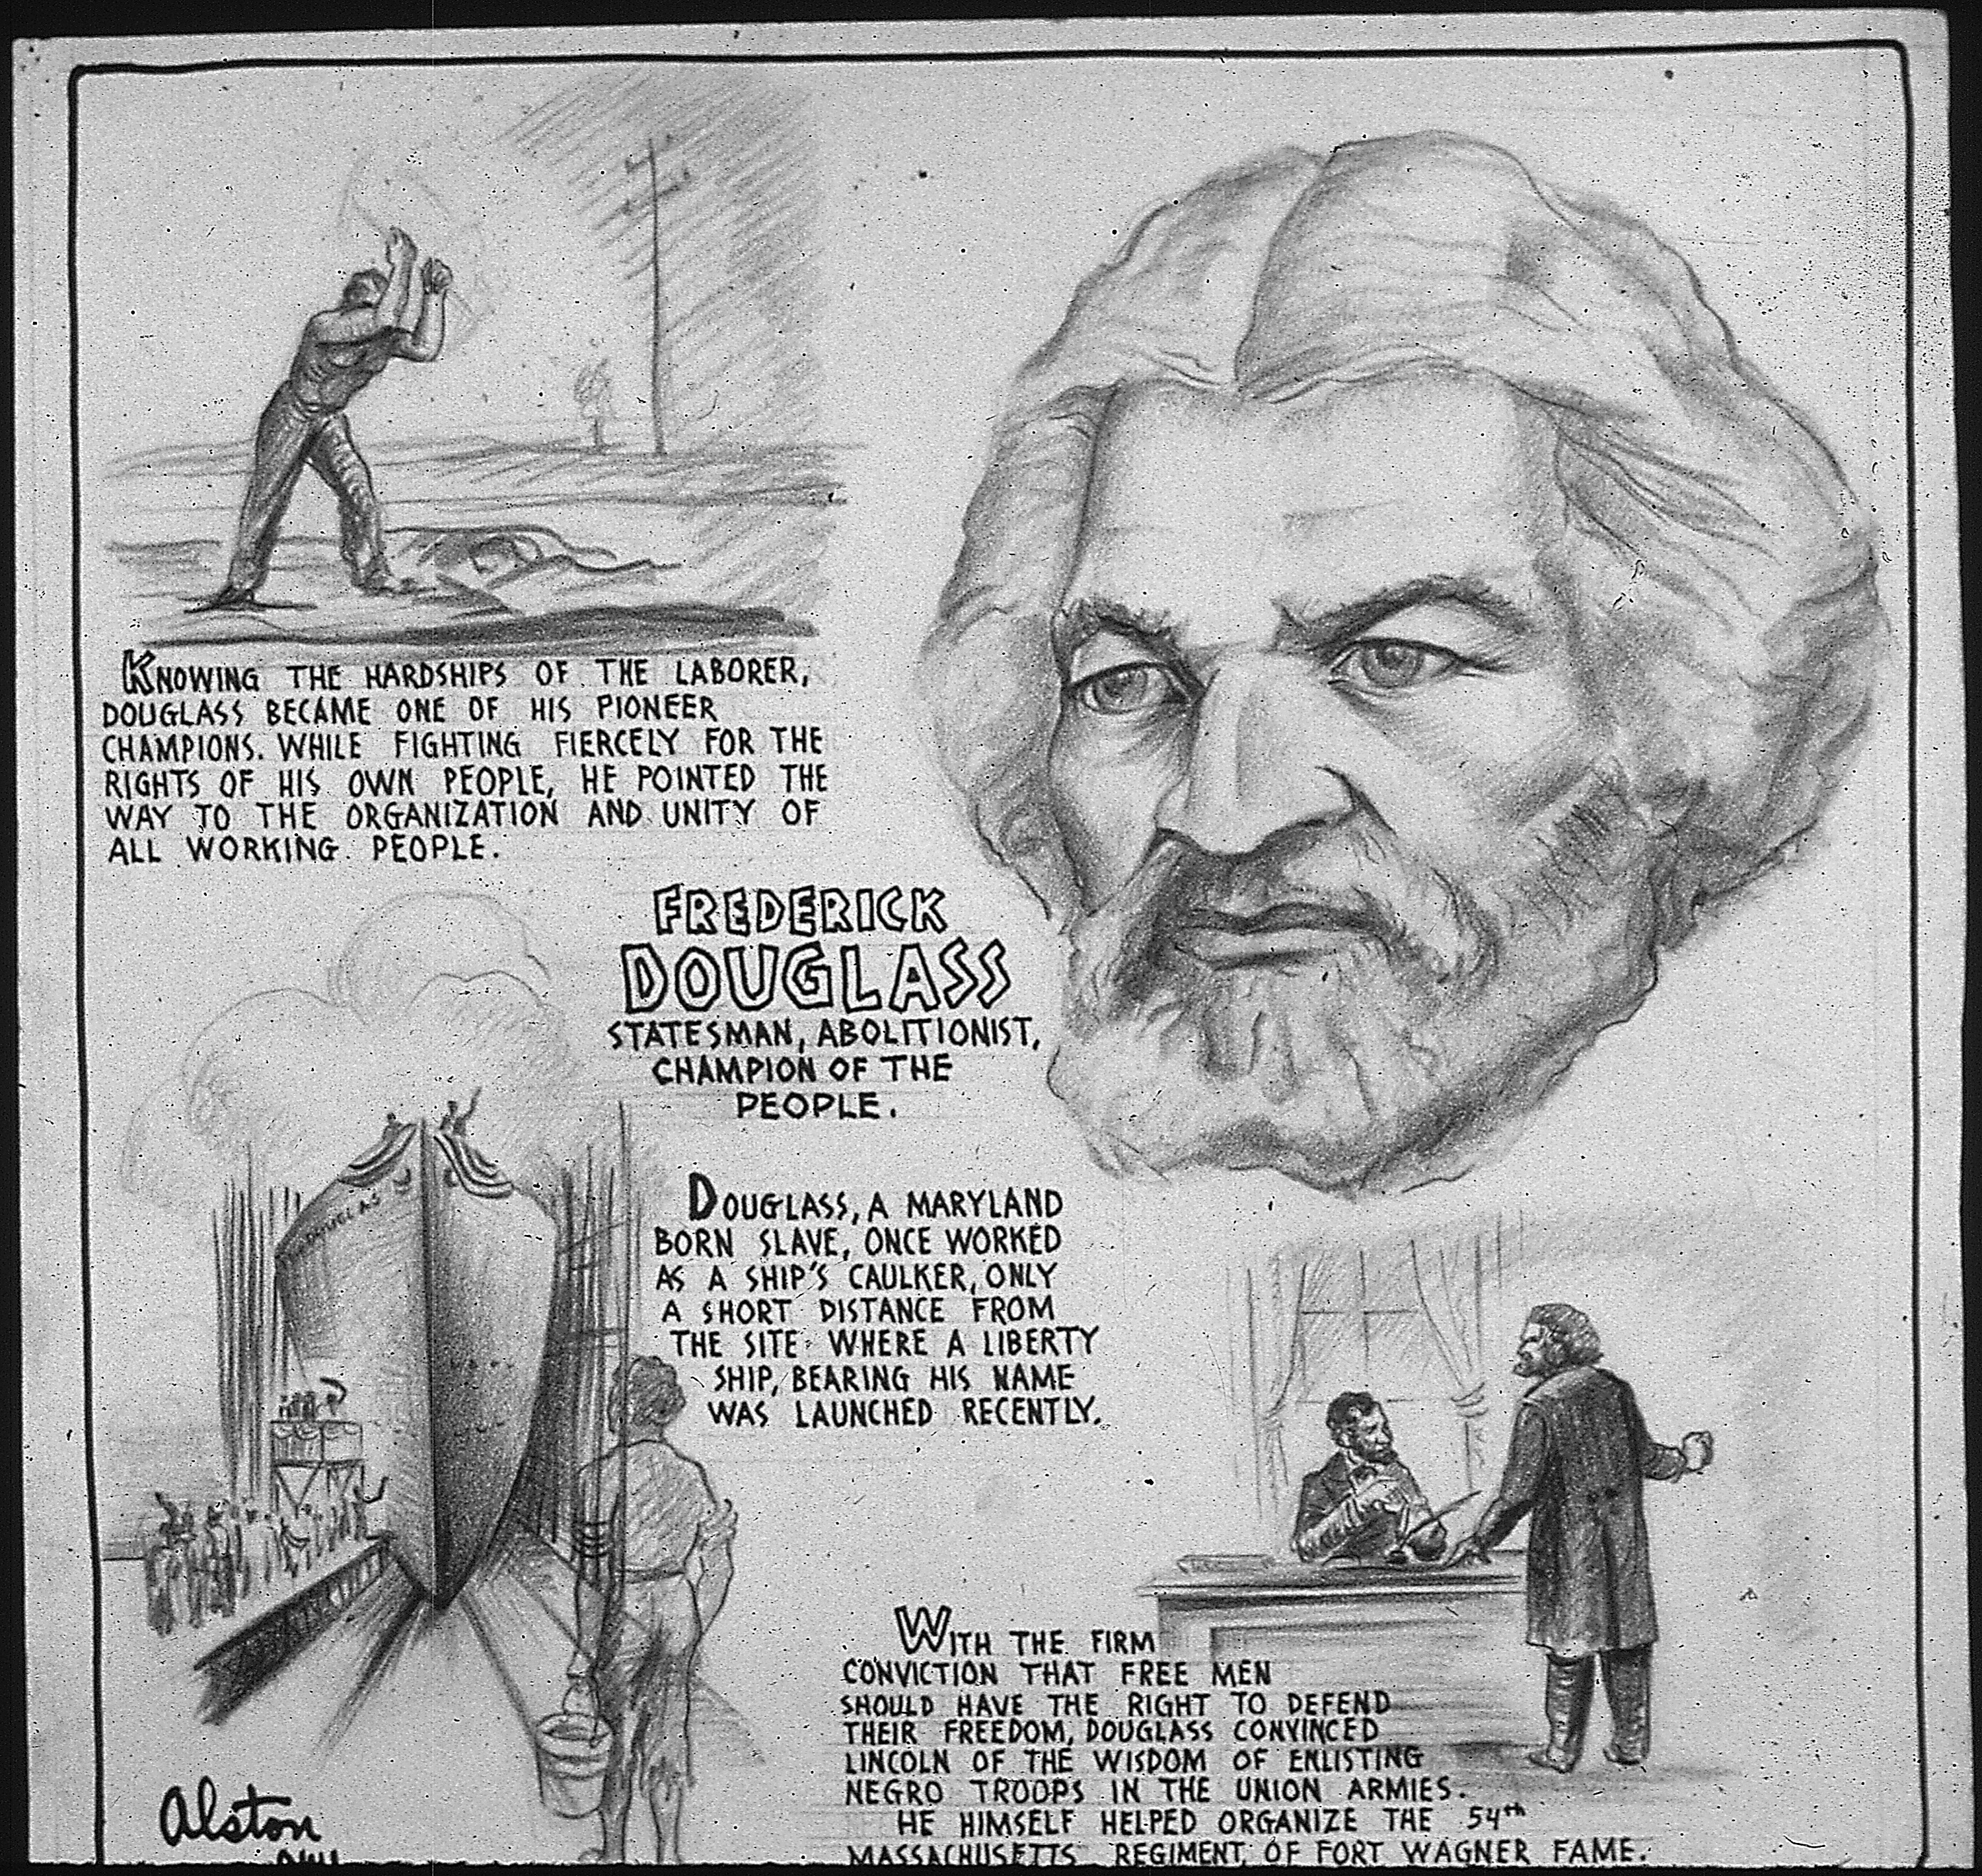 frederick douglass narrative abolition essay frederick douglass my escape from slavery essay order paper frederick douglass my escape from slavery essay order paper